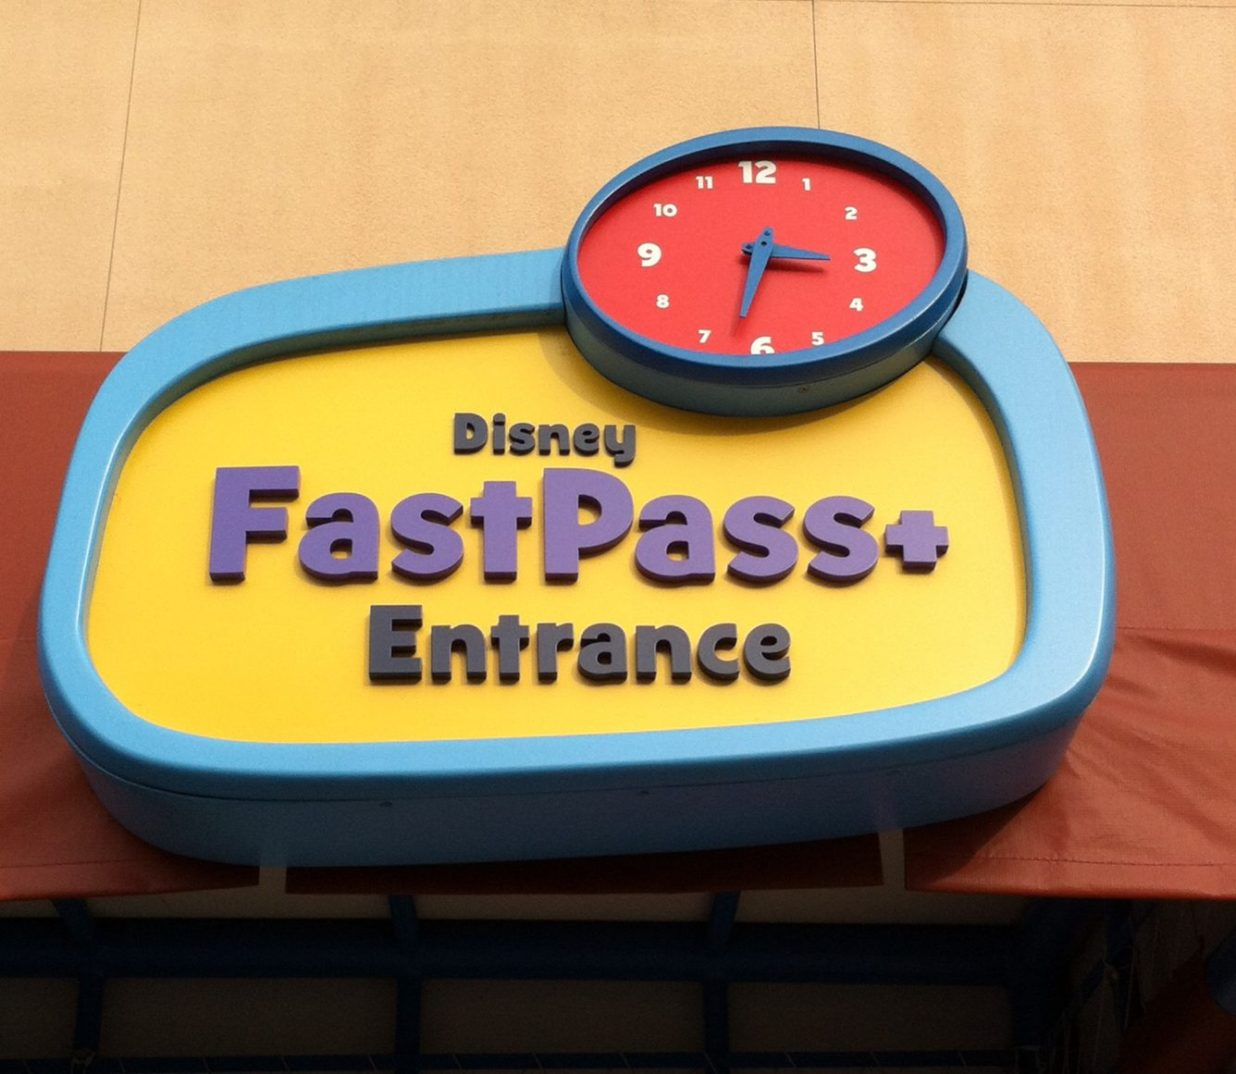 FastPass+ entrance